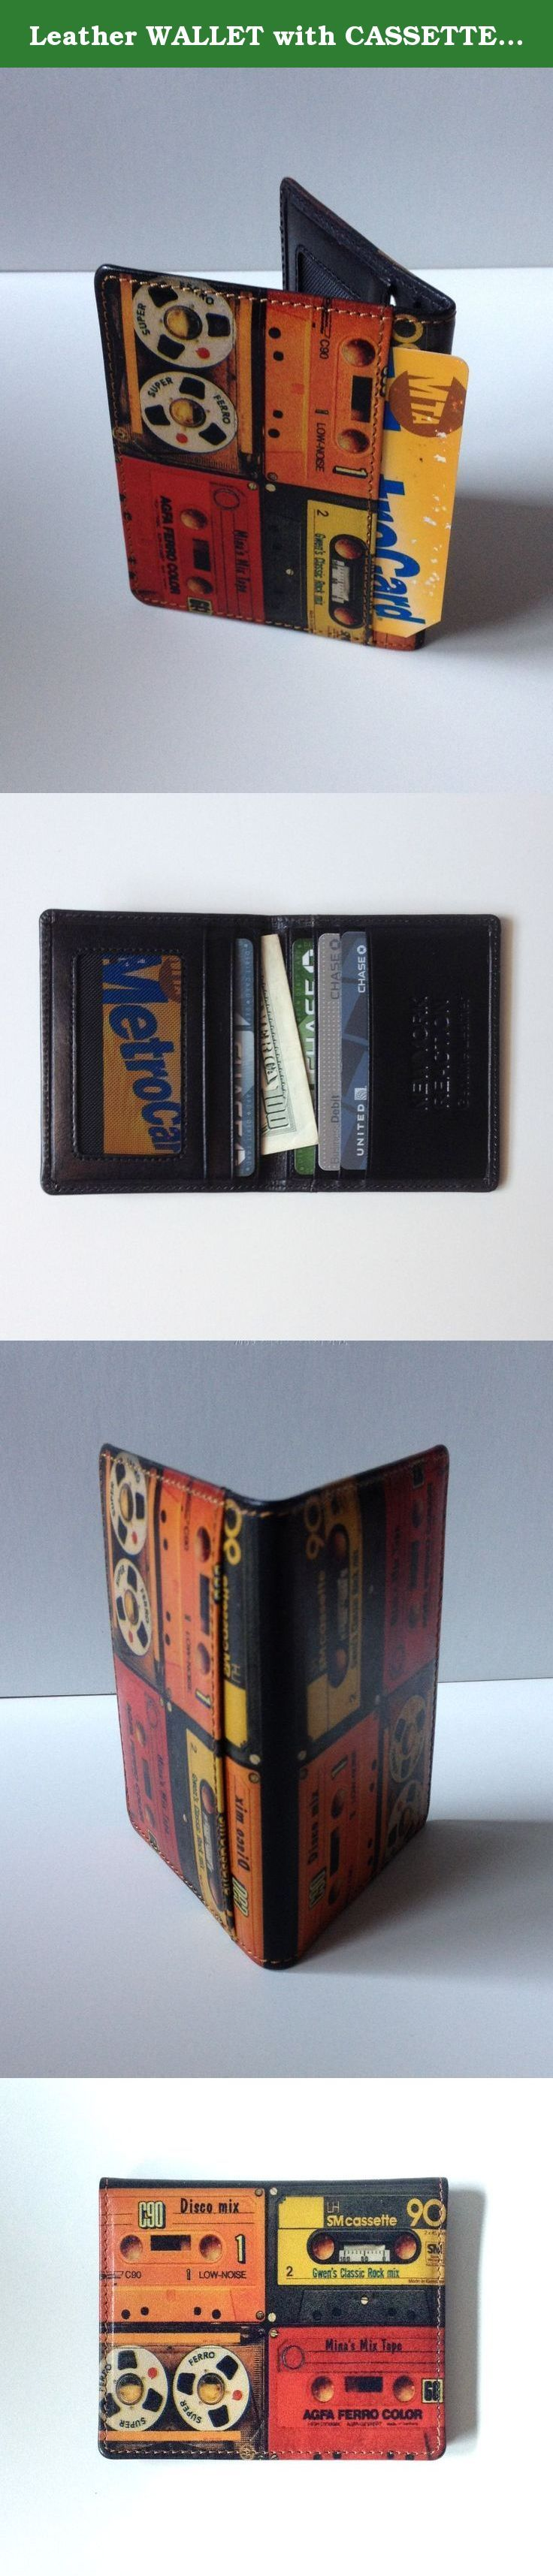 Leather WALLET with CASSETTE TAPE DESIGN Slim Card Holder. Cool Colorful Graphic Design is printed on both sides. HAND CRAFTED...HAND PRINTED...GENUINE LEATHER Small BI FOLD WALLET Folded size App. 3.25 inch x 4 inch 8cm x 10.5cm 4 Card Slots inside ( 3 on one side and 1 on the other side ) 2 inner pocket for Cash / ID / Driver's License,etc. 1 outside Window Pocket on the back for ID /Driver's License etc (shown in the pics) Each pocket is beautifully lined. Hand made using traditional...